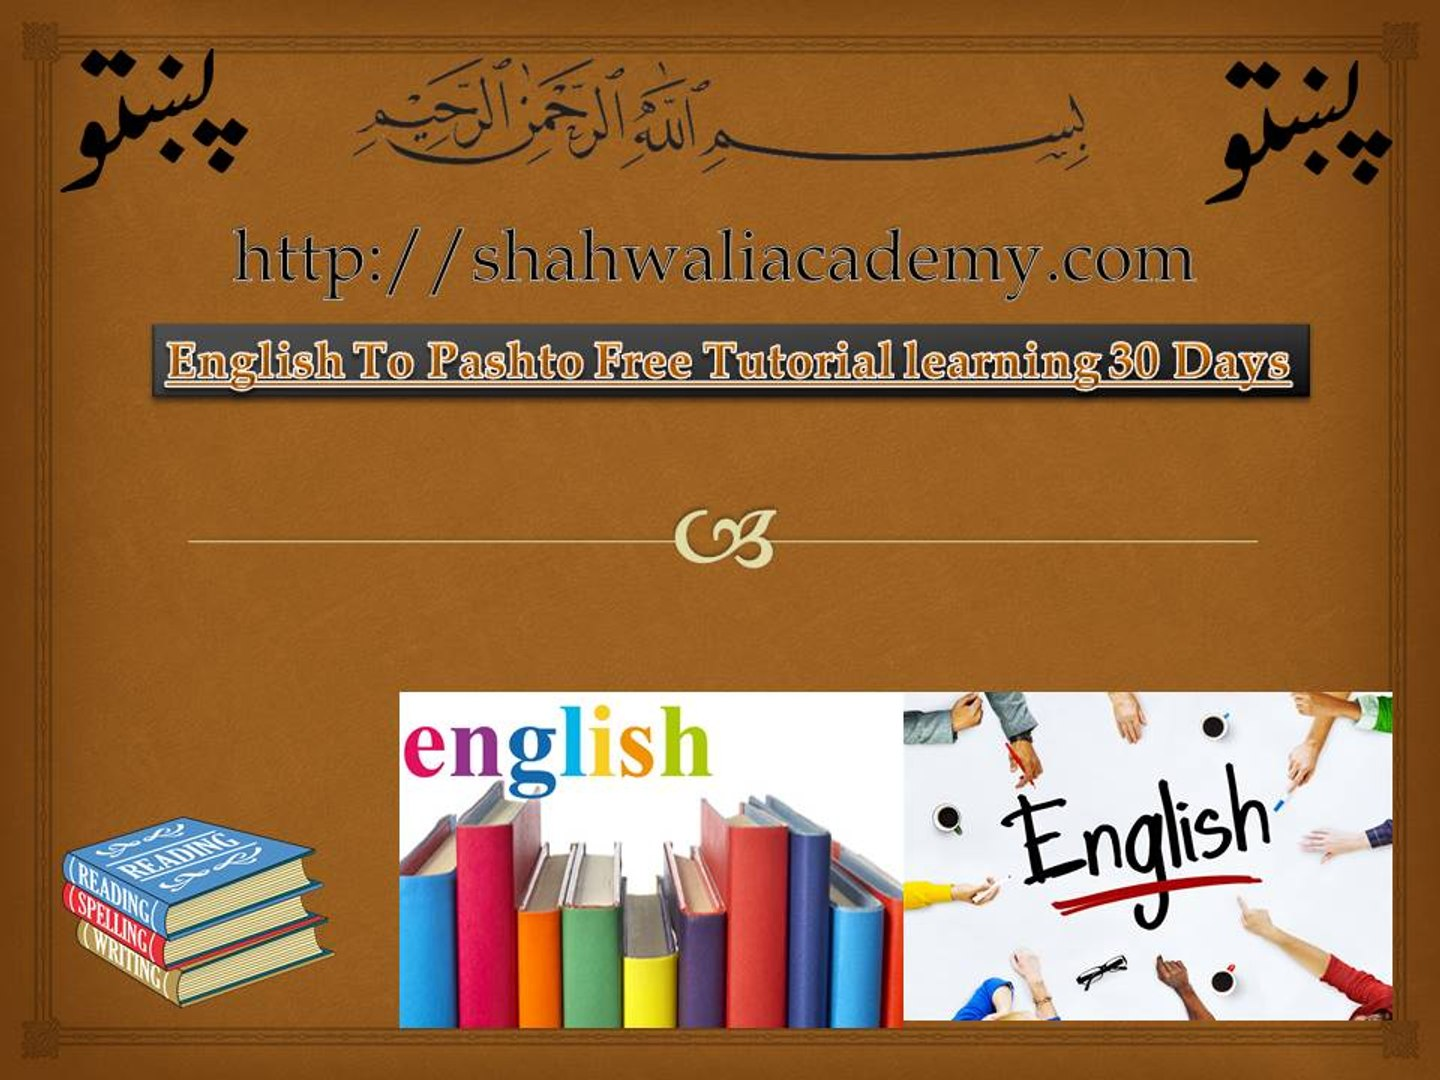 English To Pashto Free Learning in 30 Days (Lesson 1)